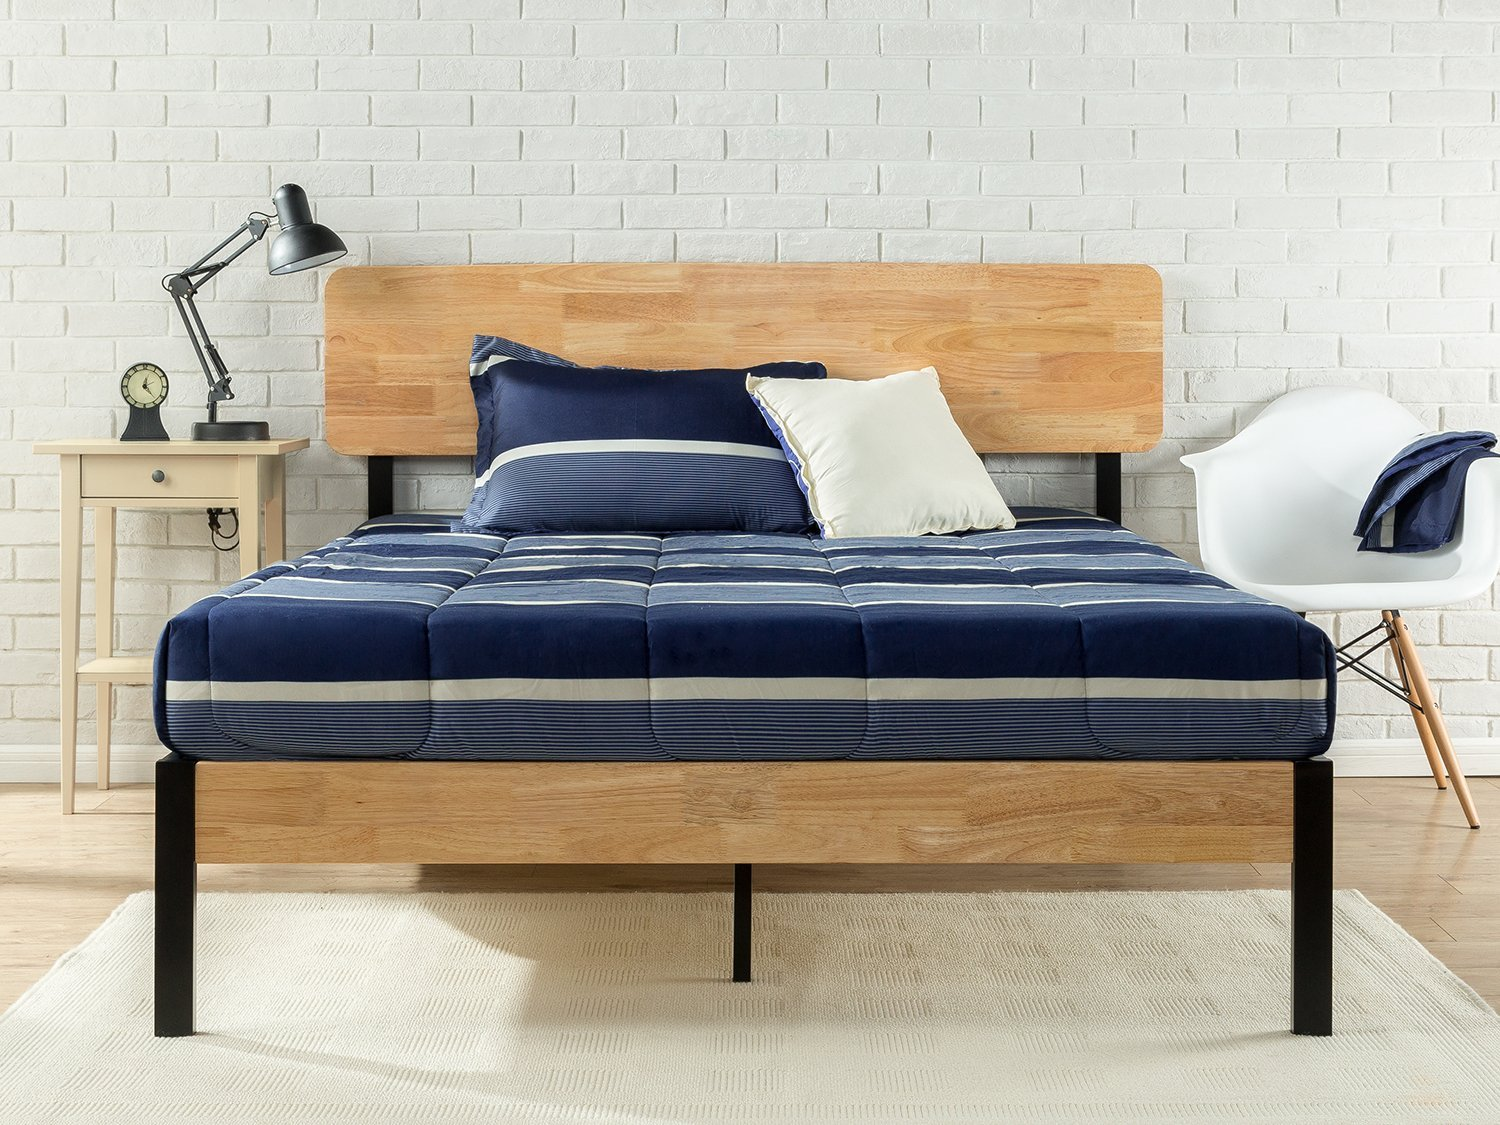 887f7cd17c The Best Platform Beds   Apartment Therapy